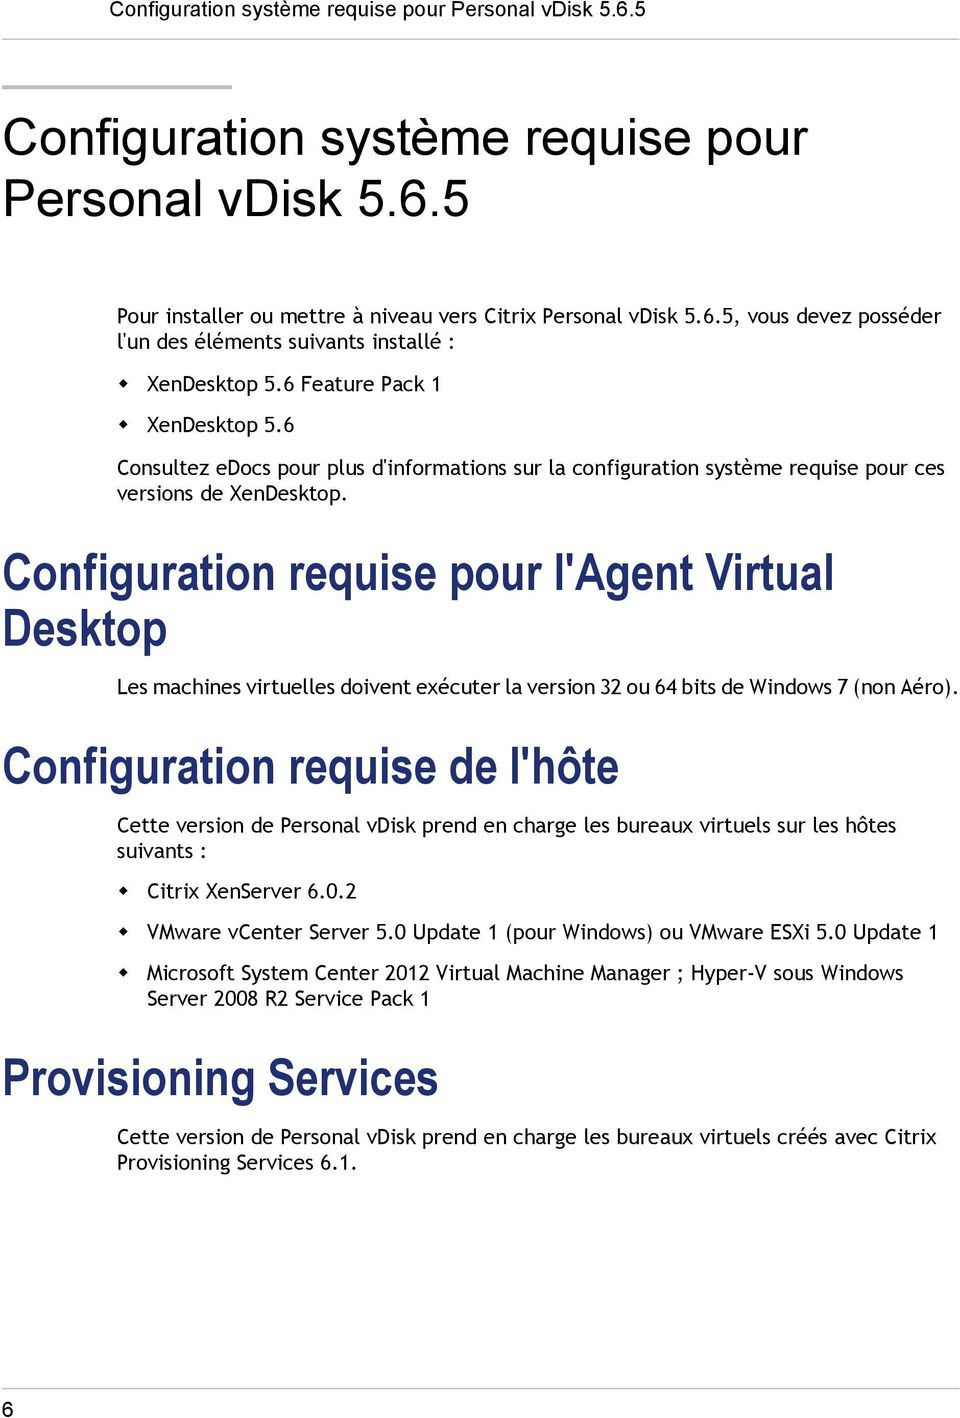 Configuration requise pour l'agent Virtual Desktop Les machines virtuelles doivent exécuter la version 32 ou 64 bits de Windows 7 (non Aéro).